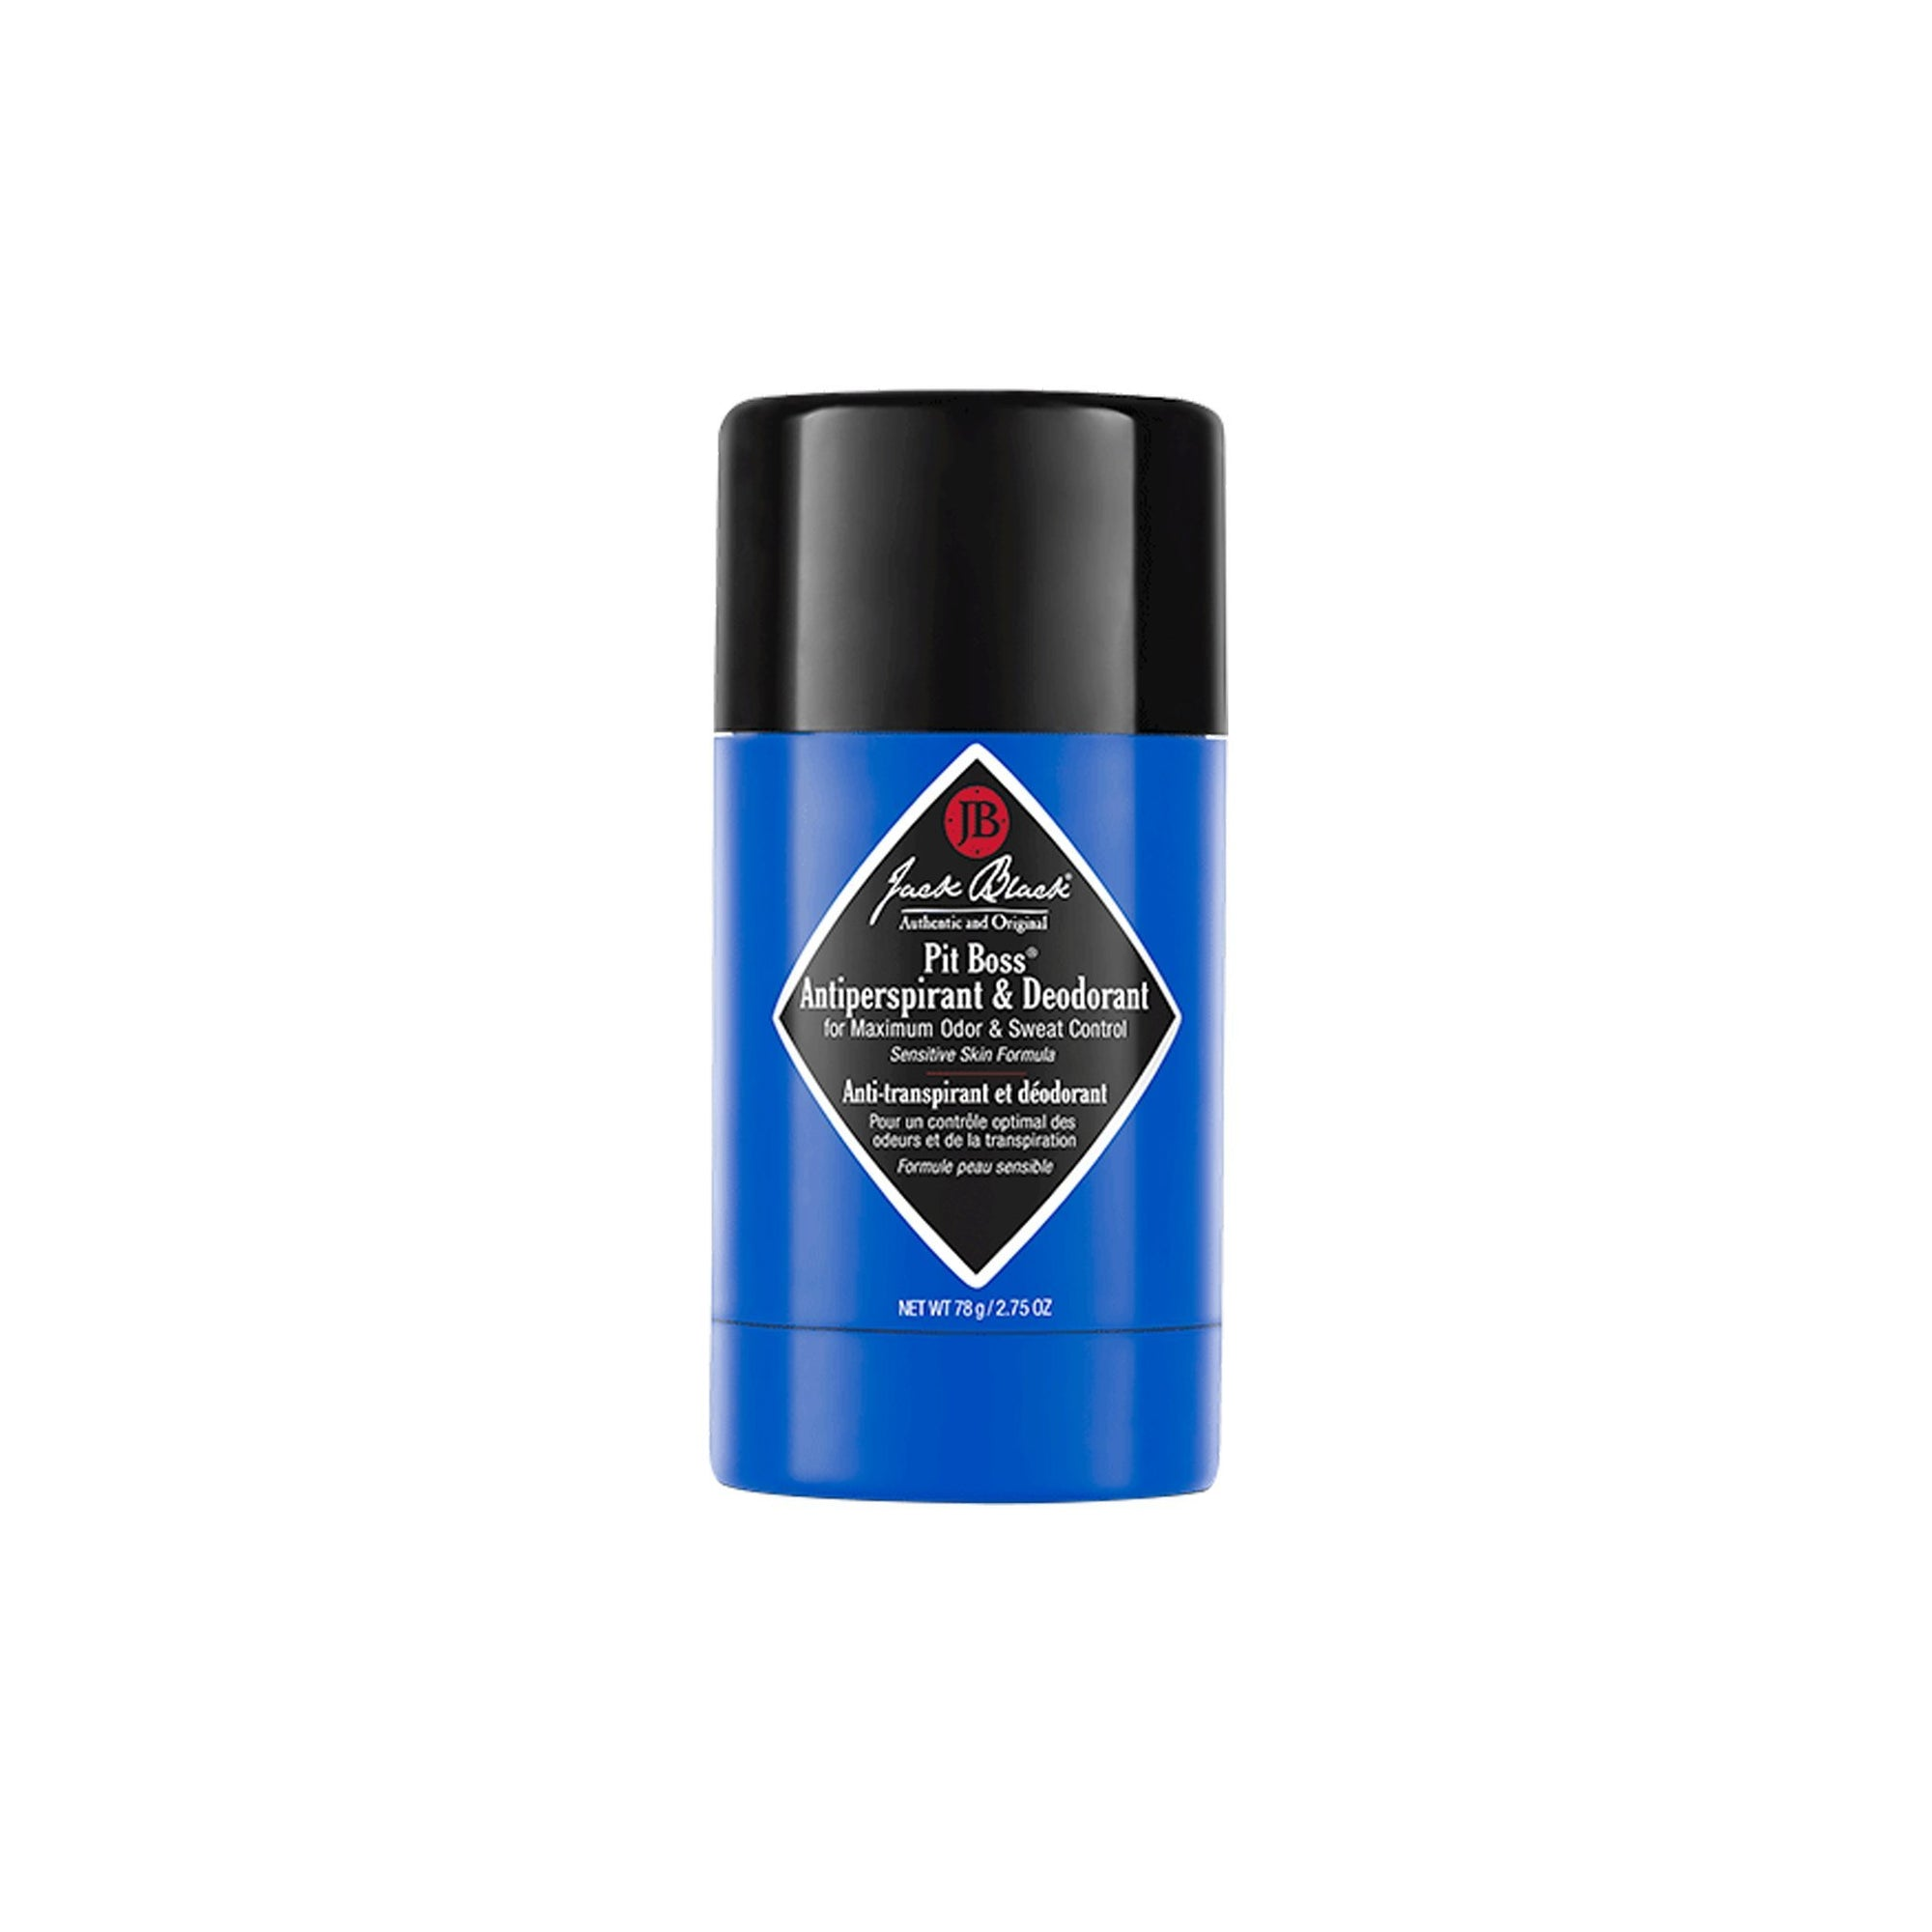 Jack Black Pit Boss Antiperspirant & Deodorant 81ml